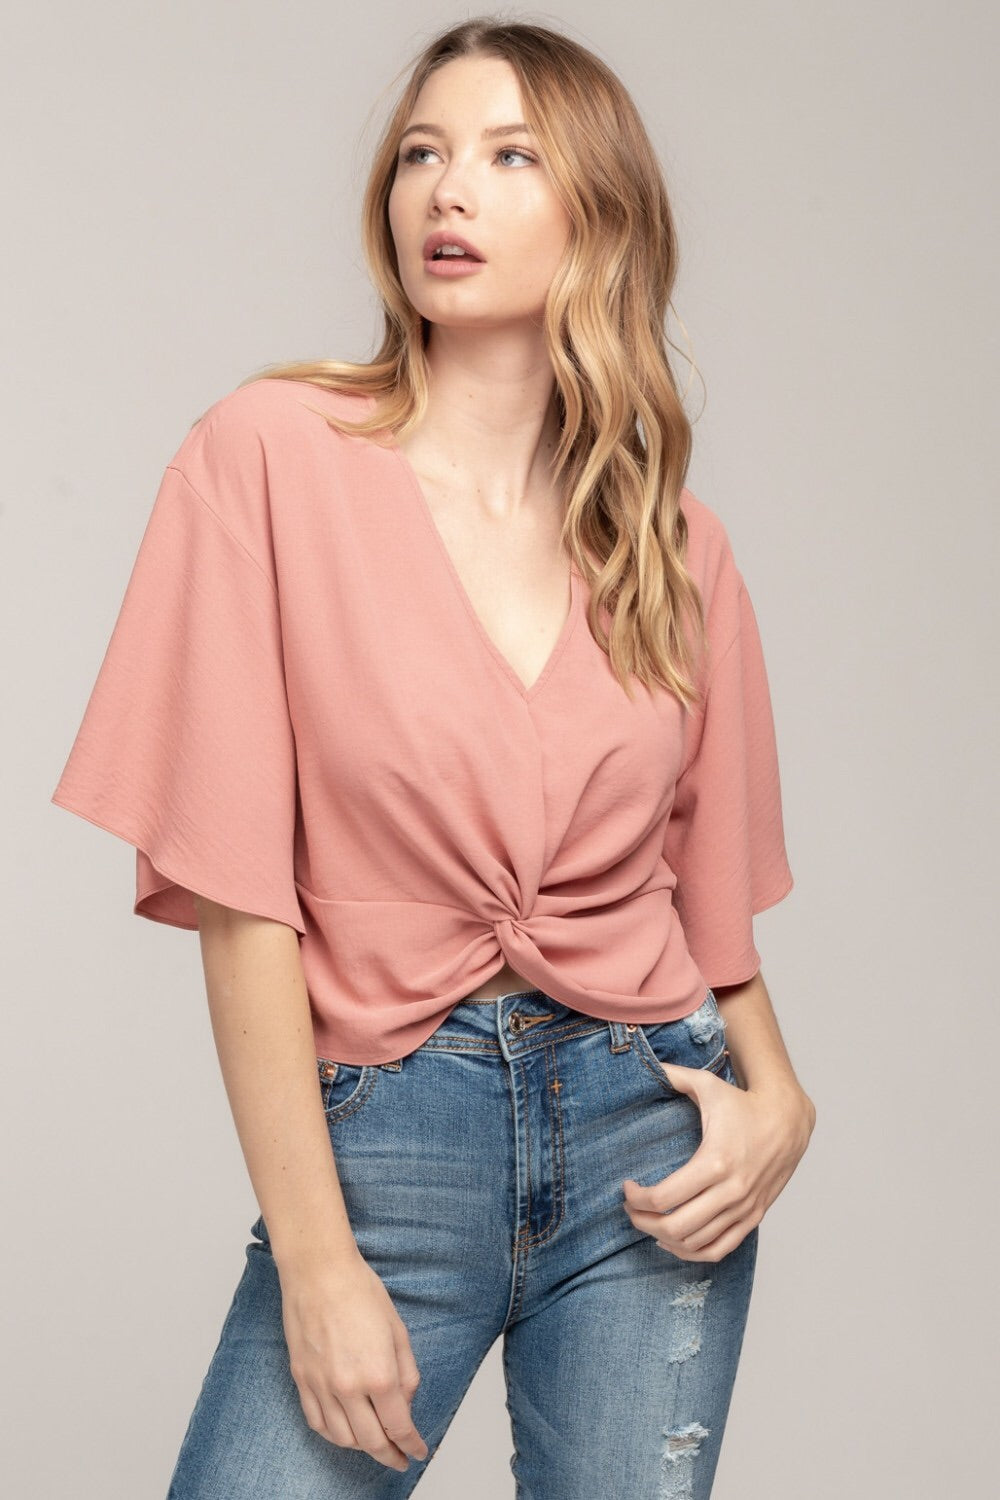 Leila Knot Top in Blush